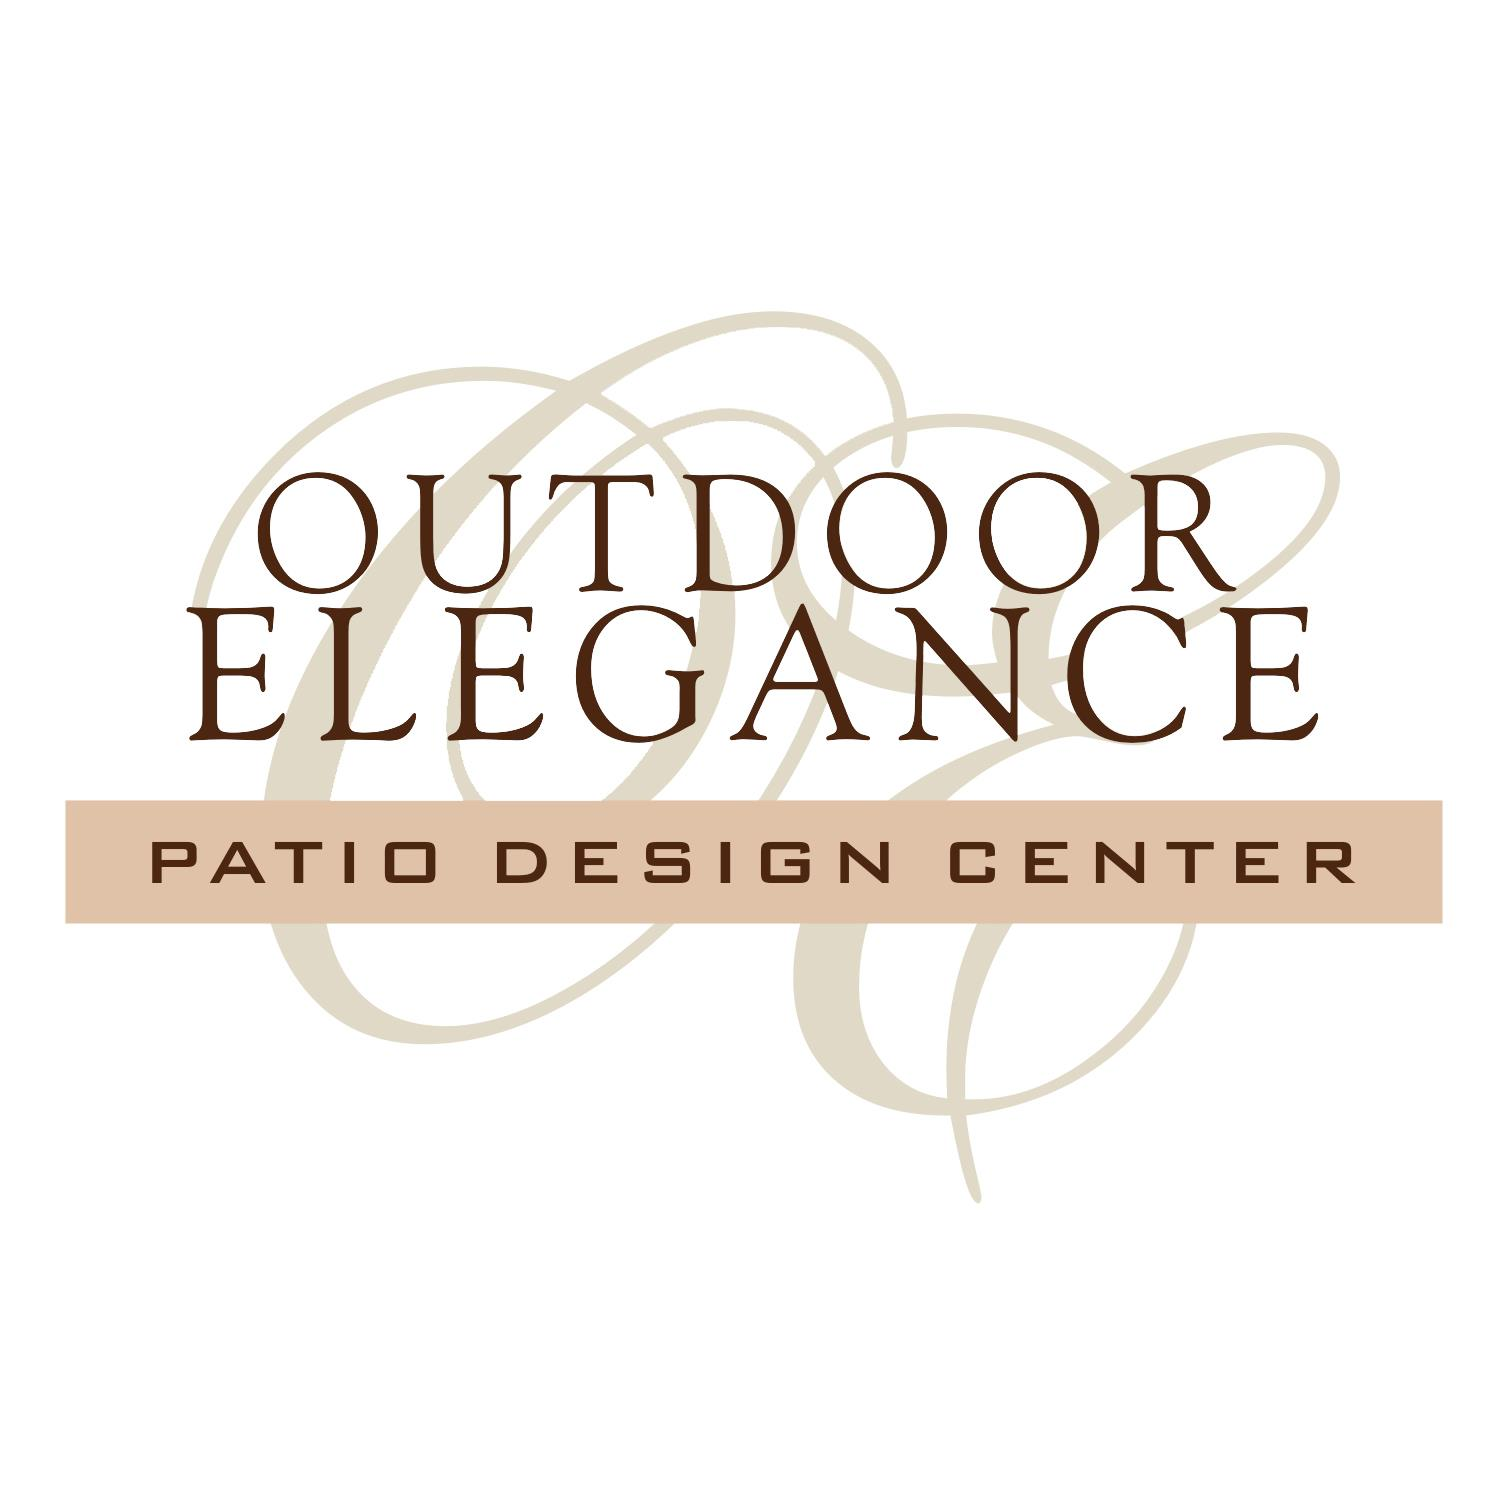 Outdoor Elegance